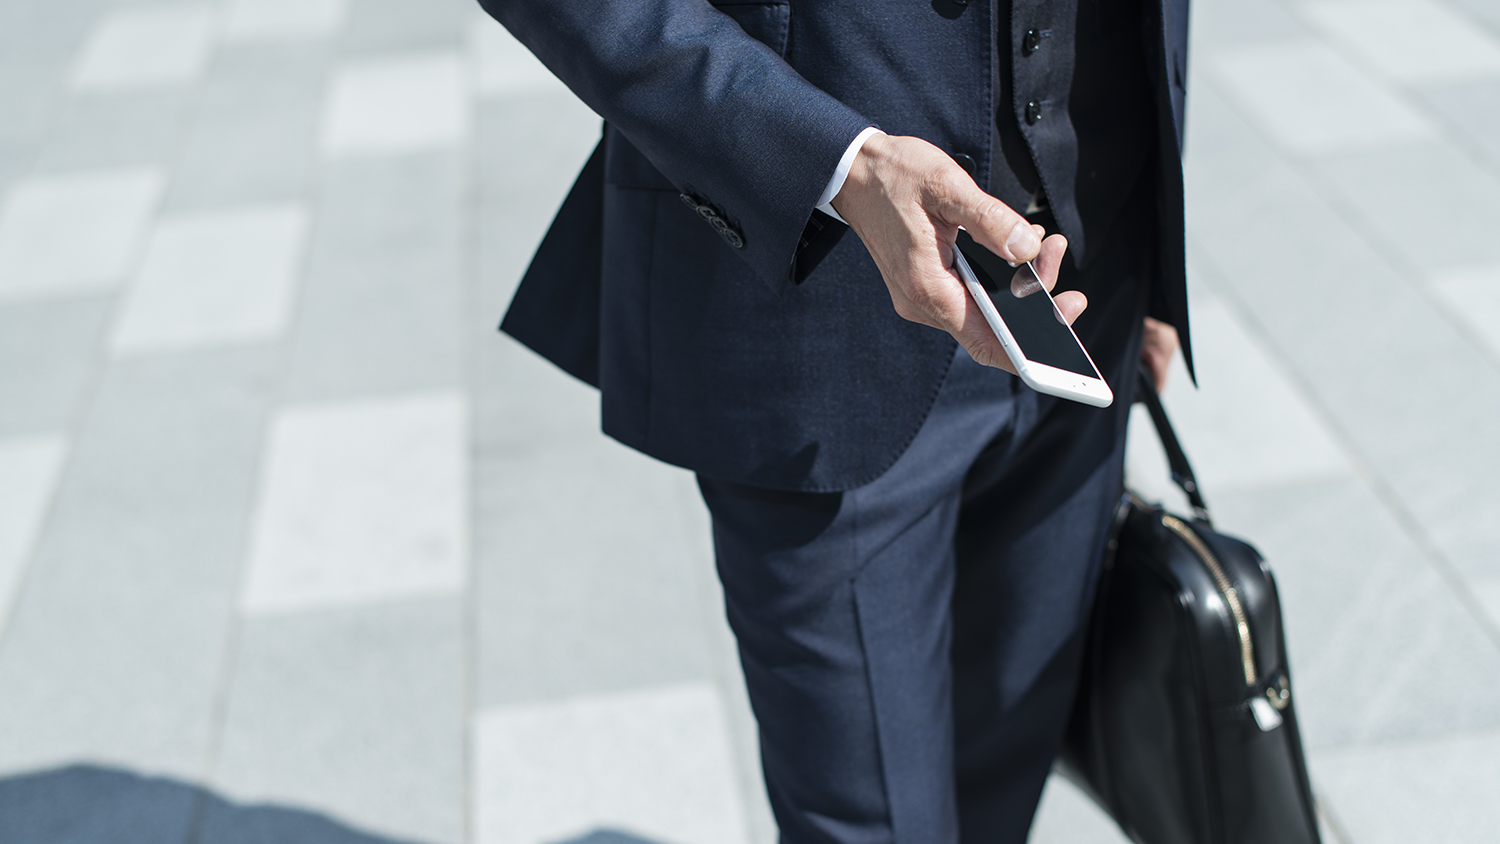 IT sales executive walking outside answering emails on smartphone